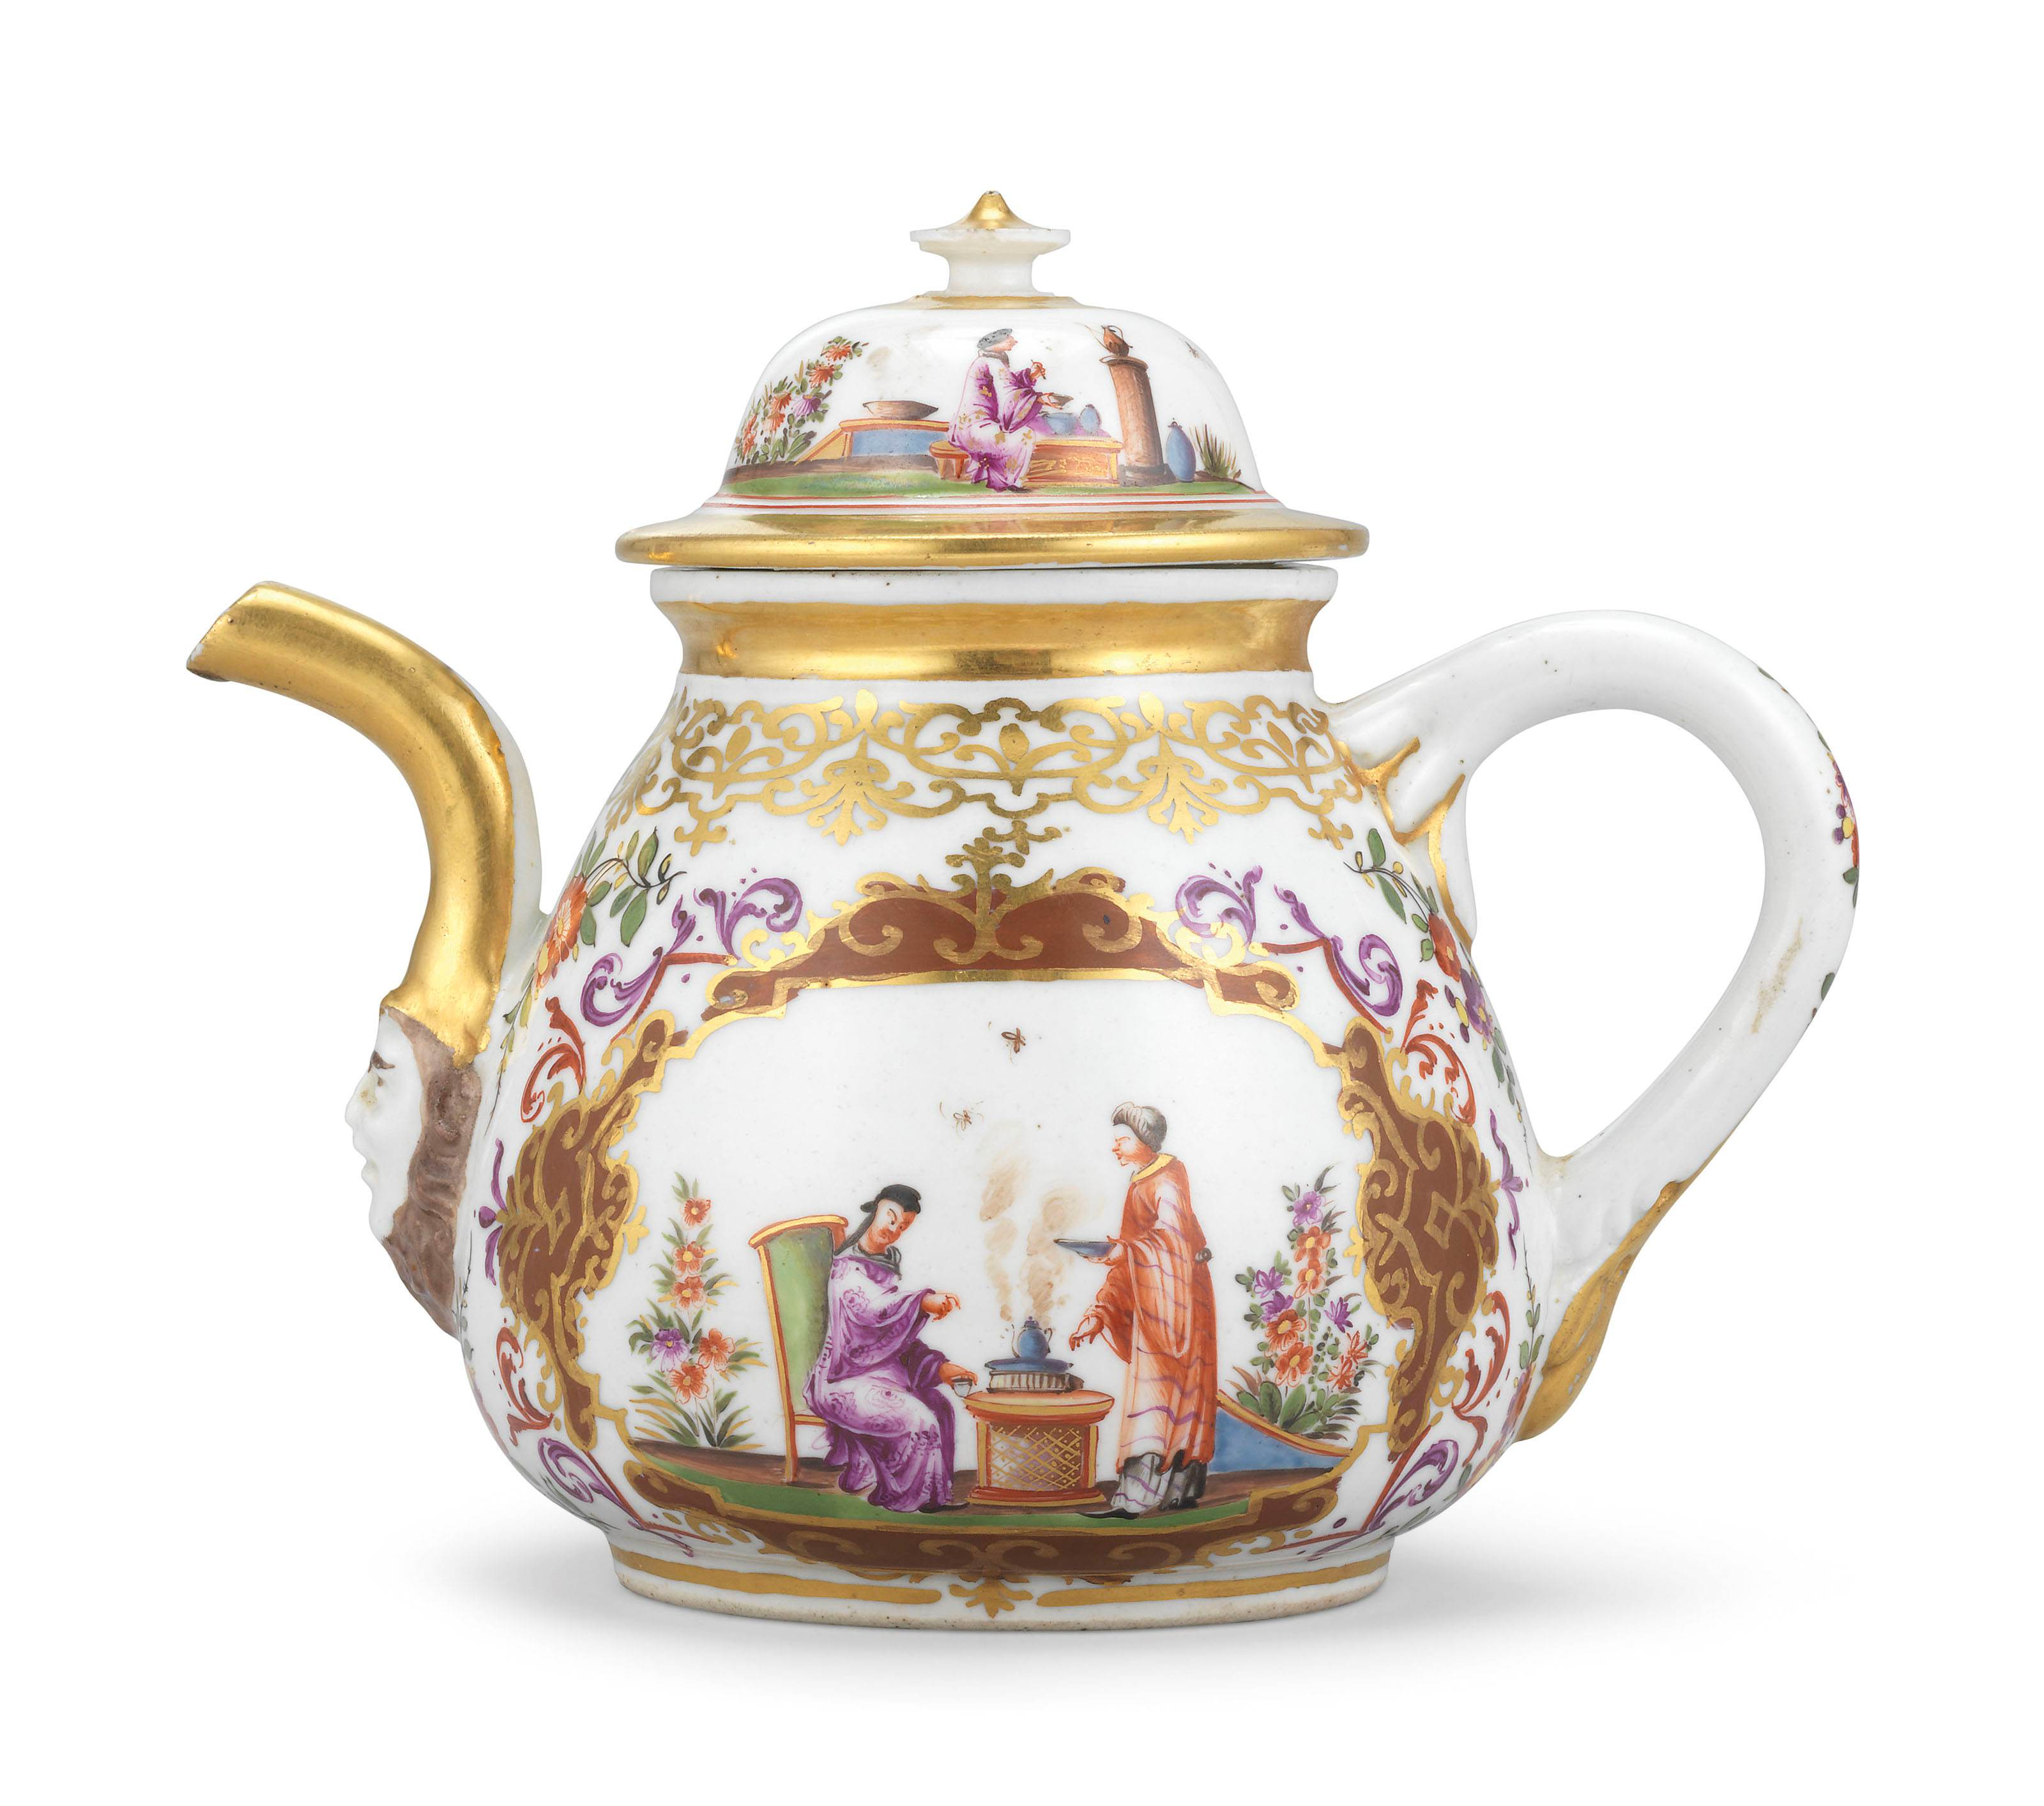 A MEISSEN PORCELAIN TEAPOT AND COVER